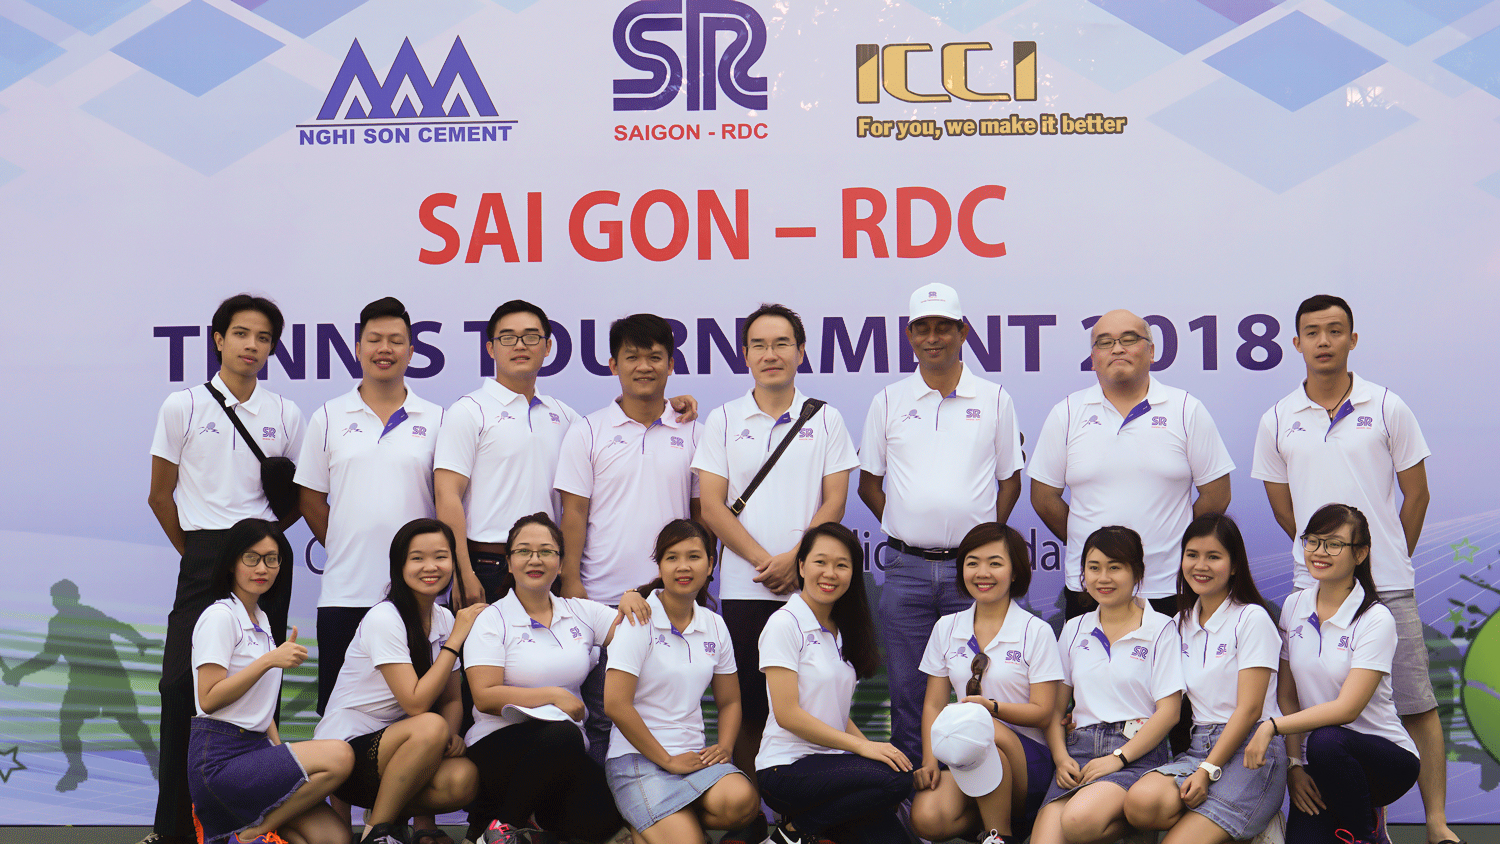 Saigon-RDC Tennis Tournament 2018